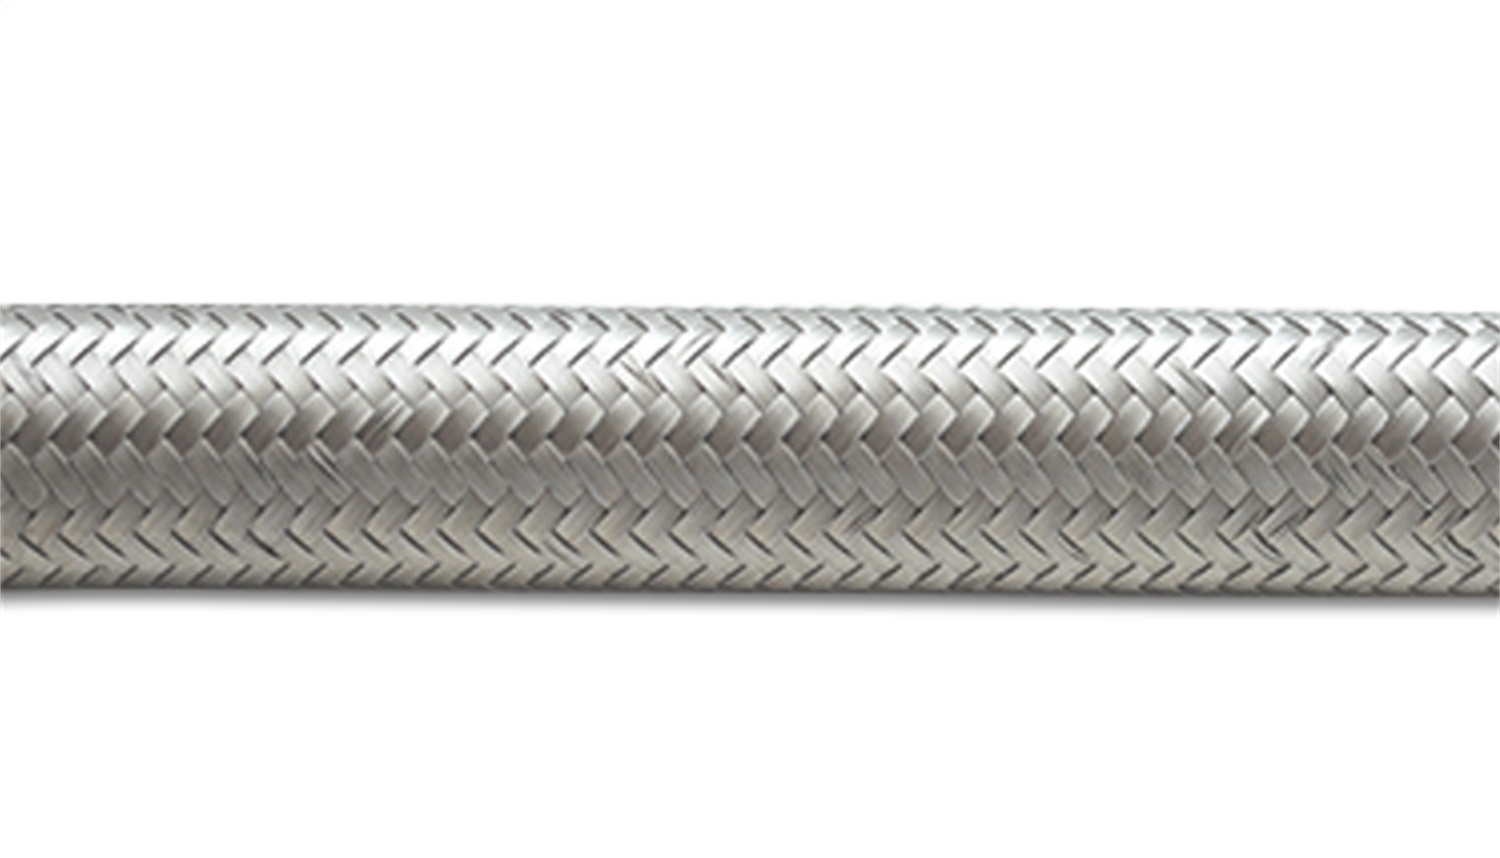 Vibrant Performance 11949 Stainless Steel Braided Flex Hose